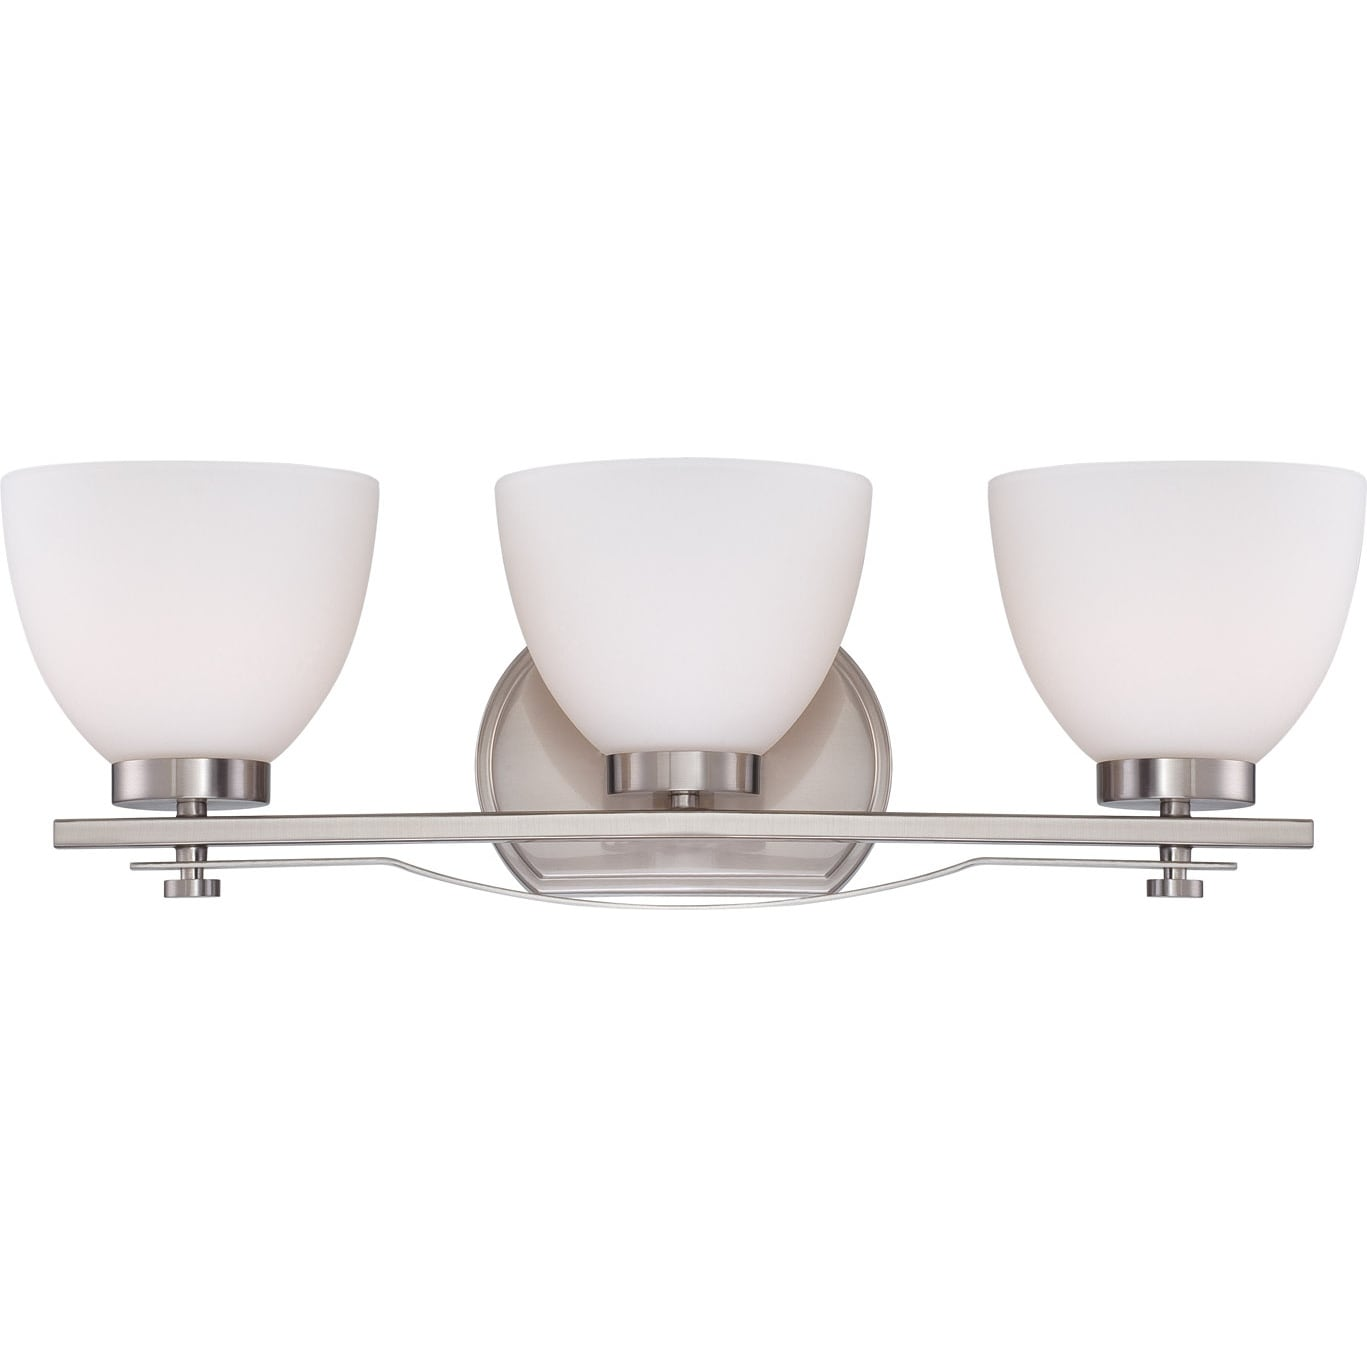 Nuvo Bentley 3-light Brushed Nickel Vanity Fixture - Thumbnail 0